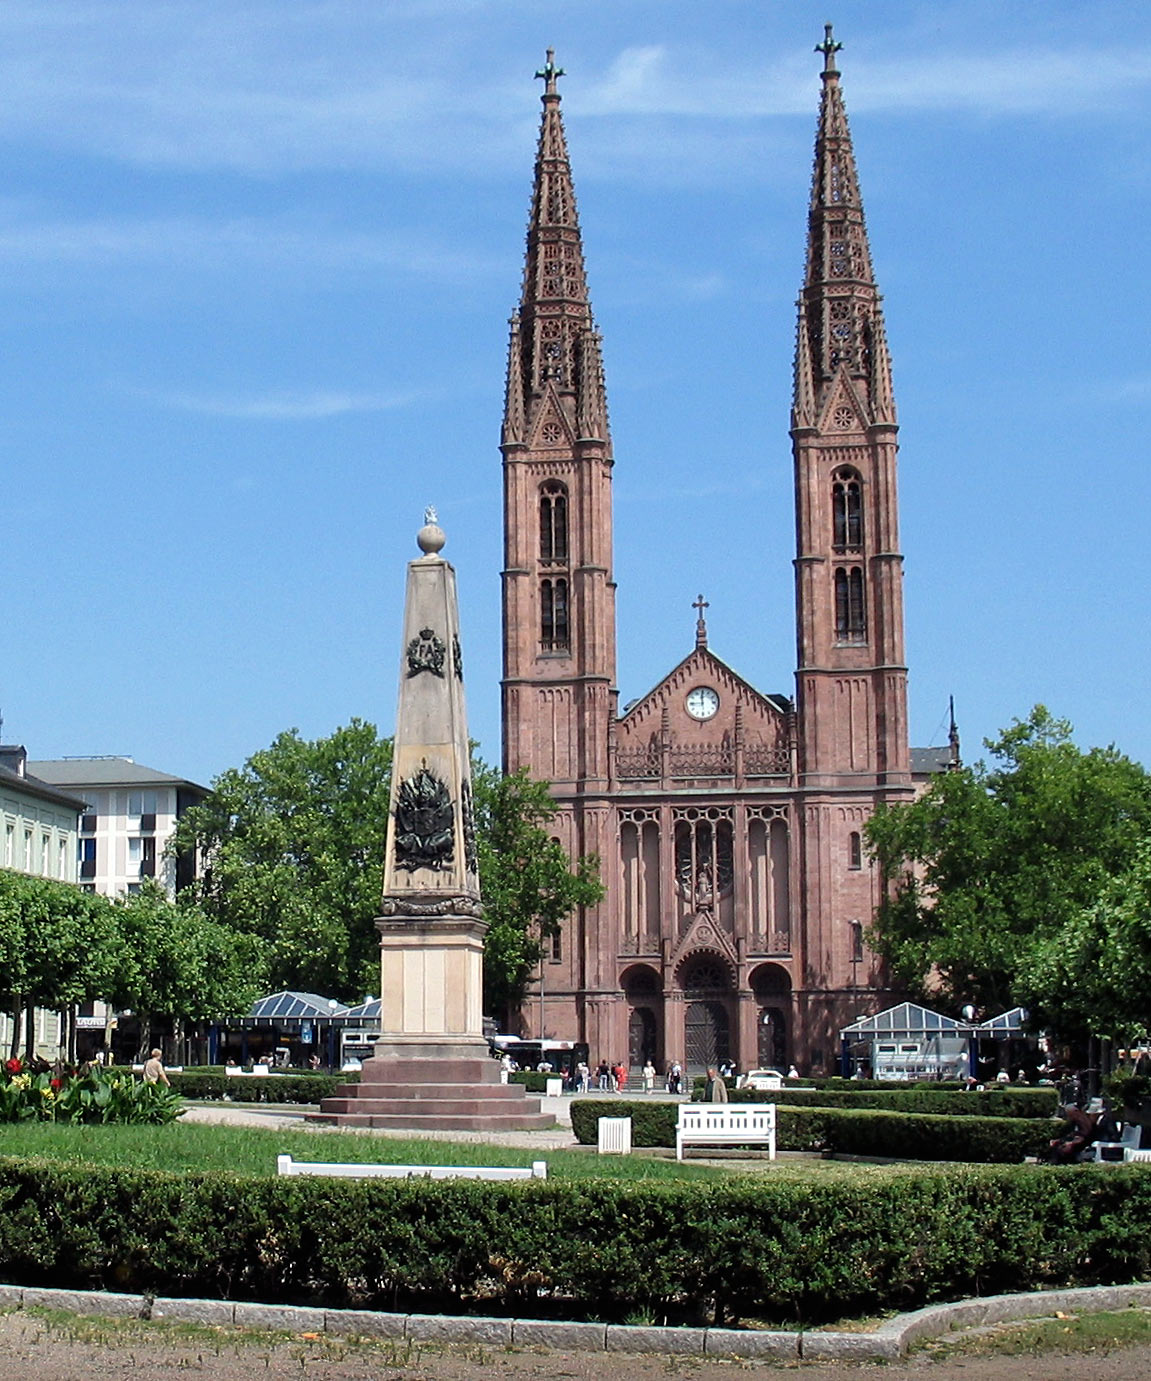 Wiesbaden Germany  city images : ... visiting Germany for the first time! xpost /r/Germany : Wiesbaden